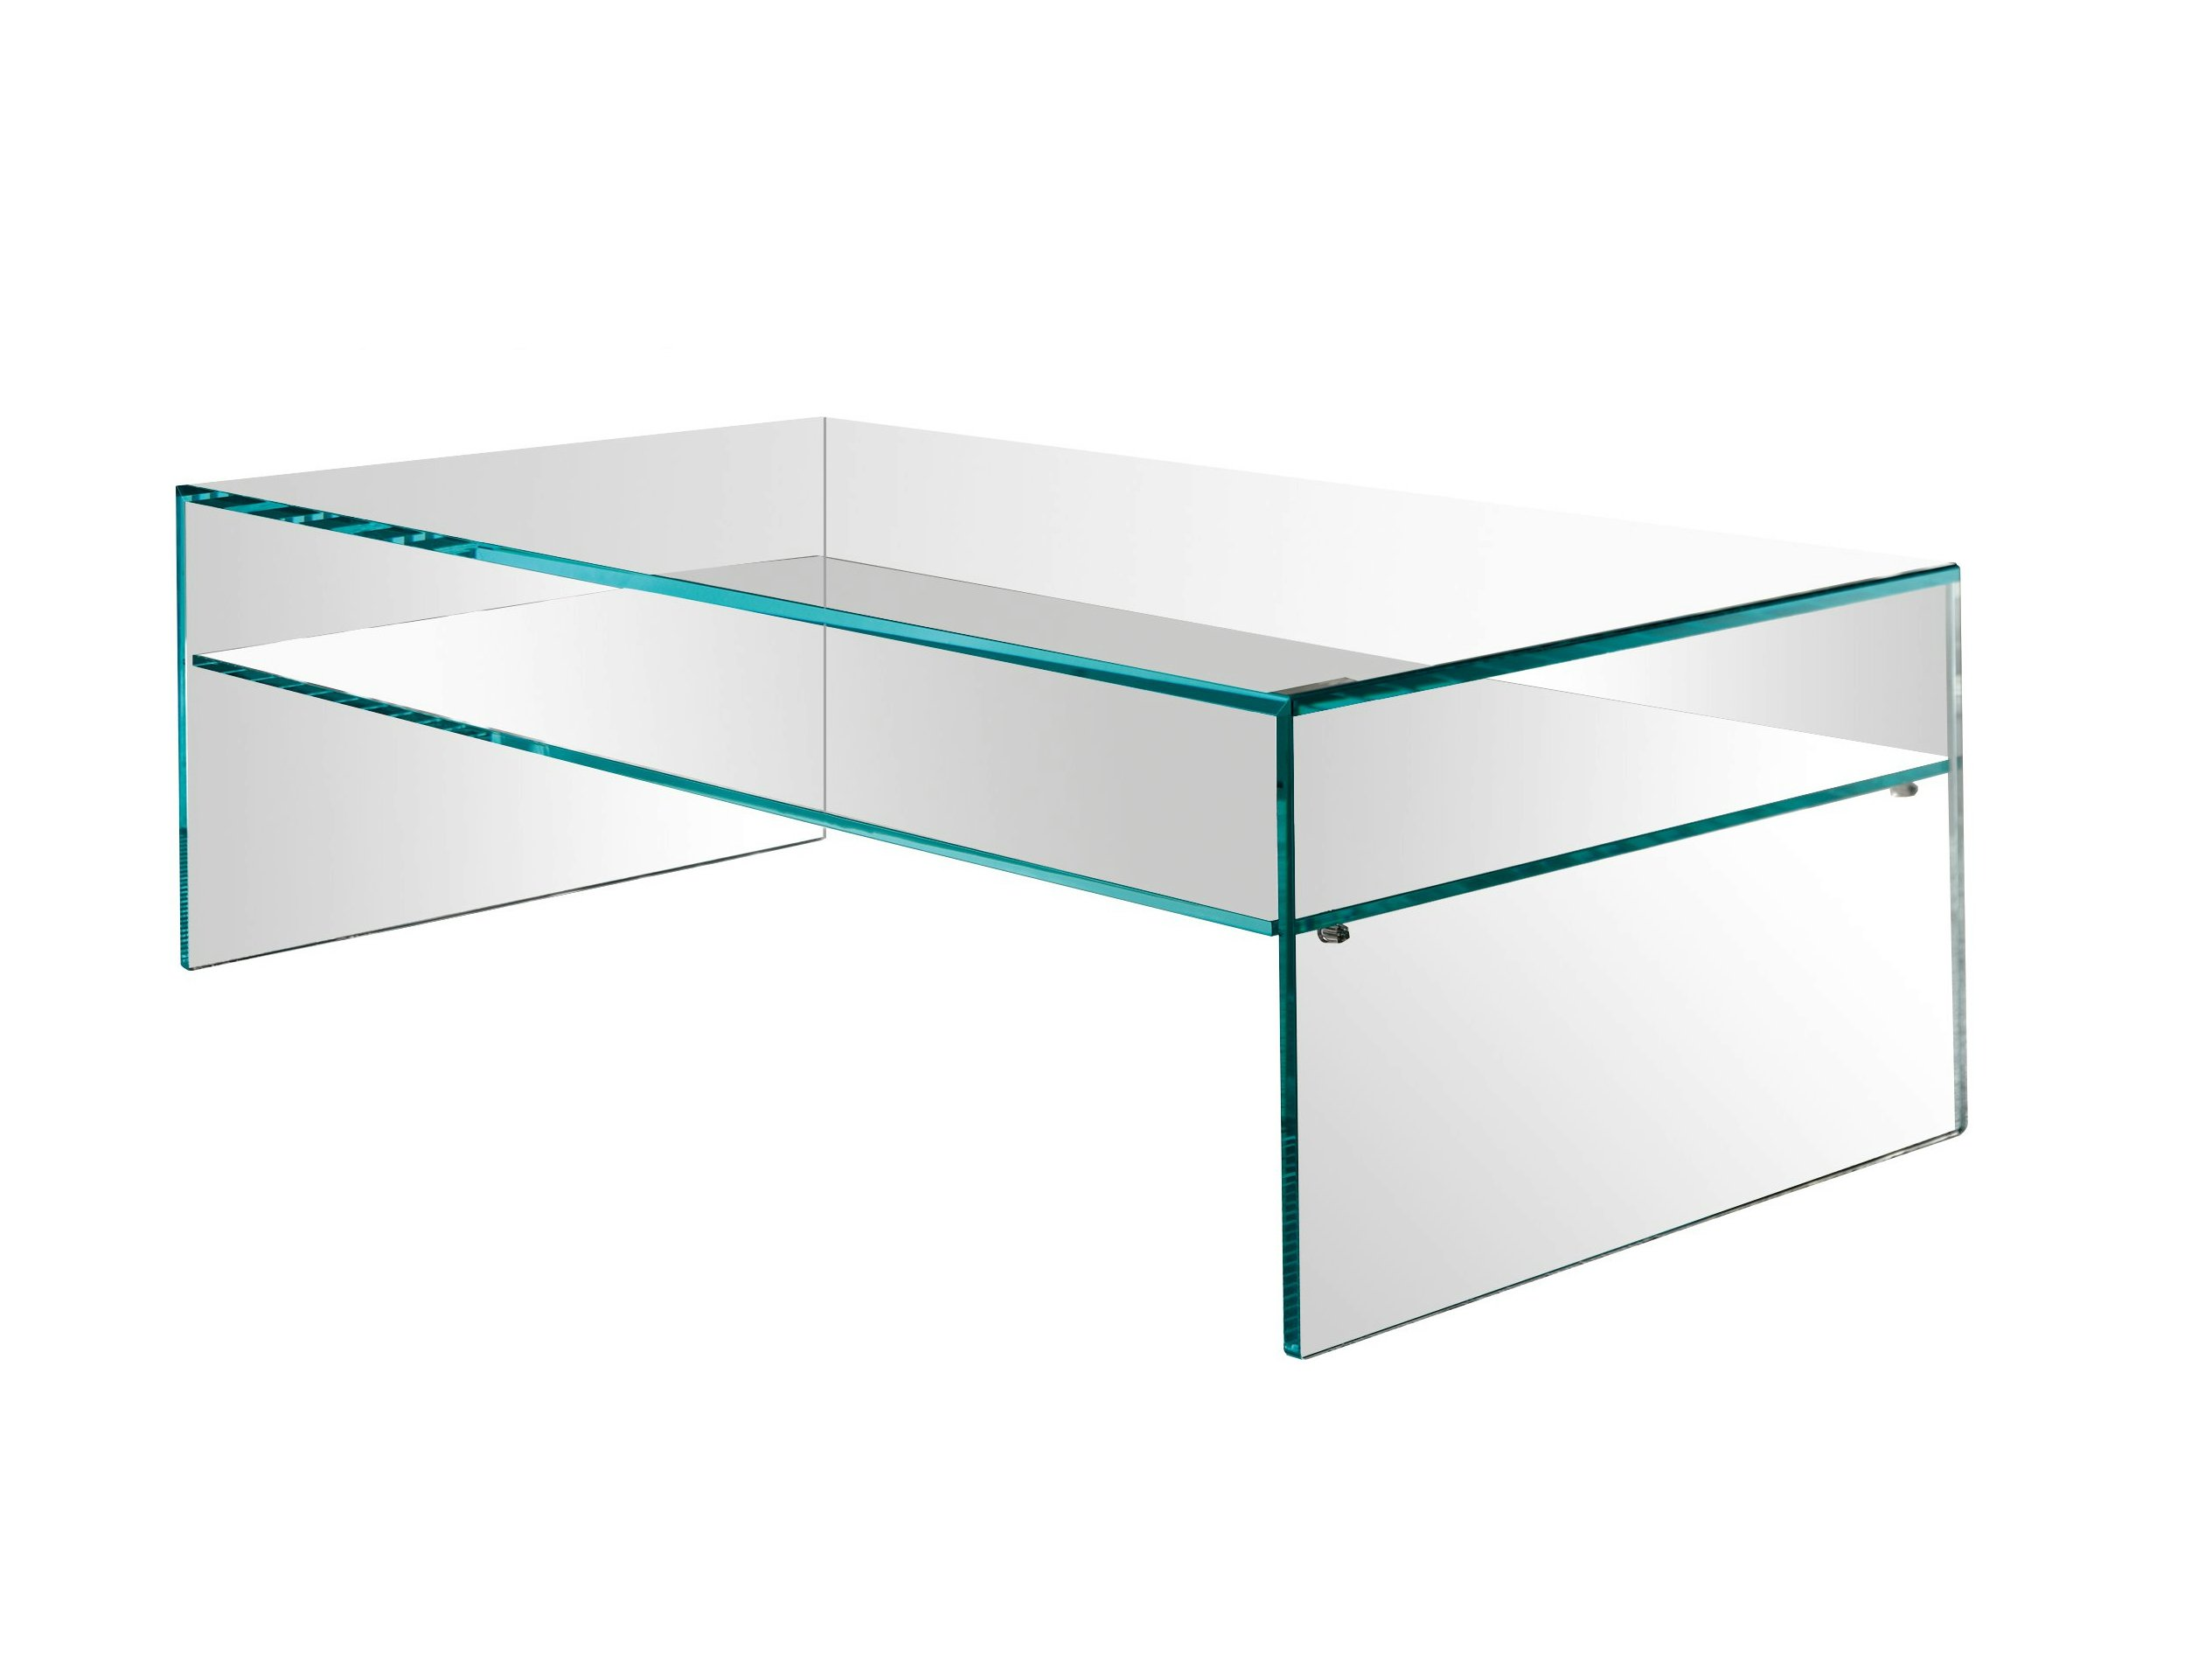 Table basse rectangulaire en verre fratina due by t d tonelli design - Table basse verre rectangulaire ...